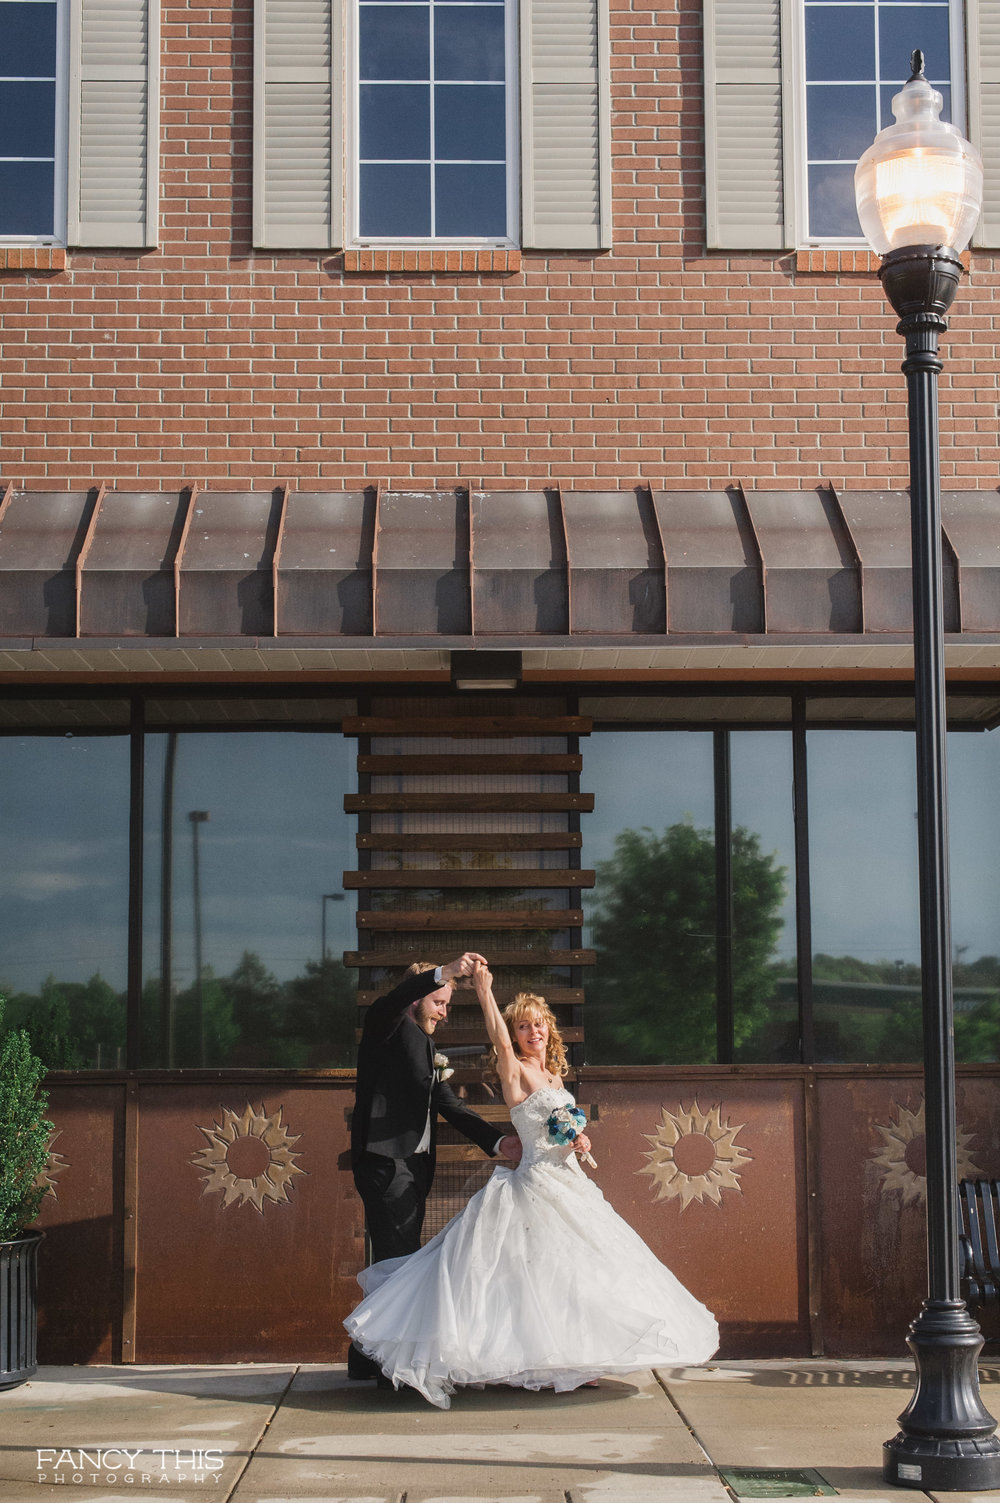 courtneyjasonwedding_socialmediaready189.jpg